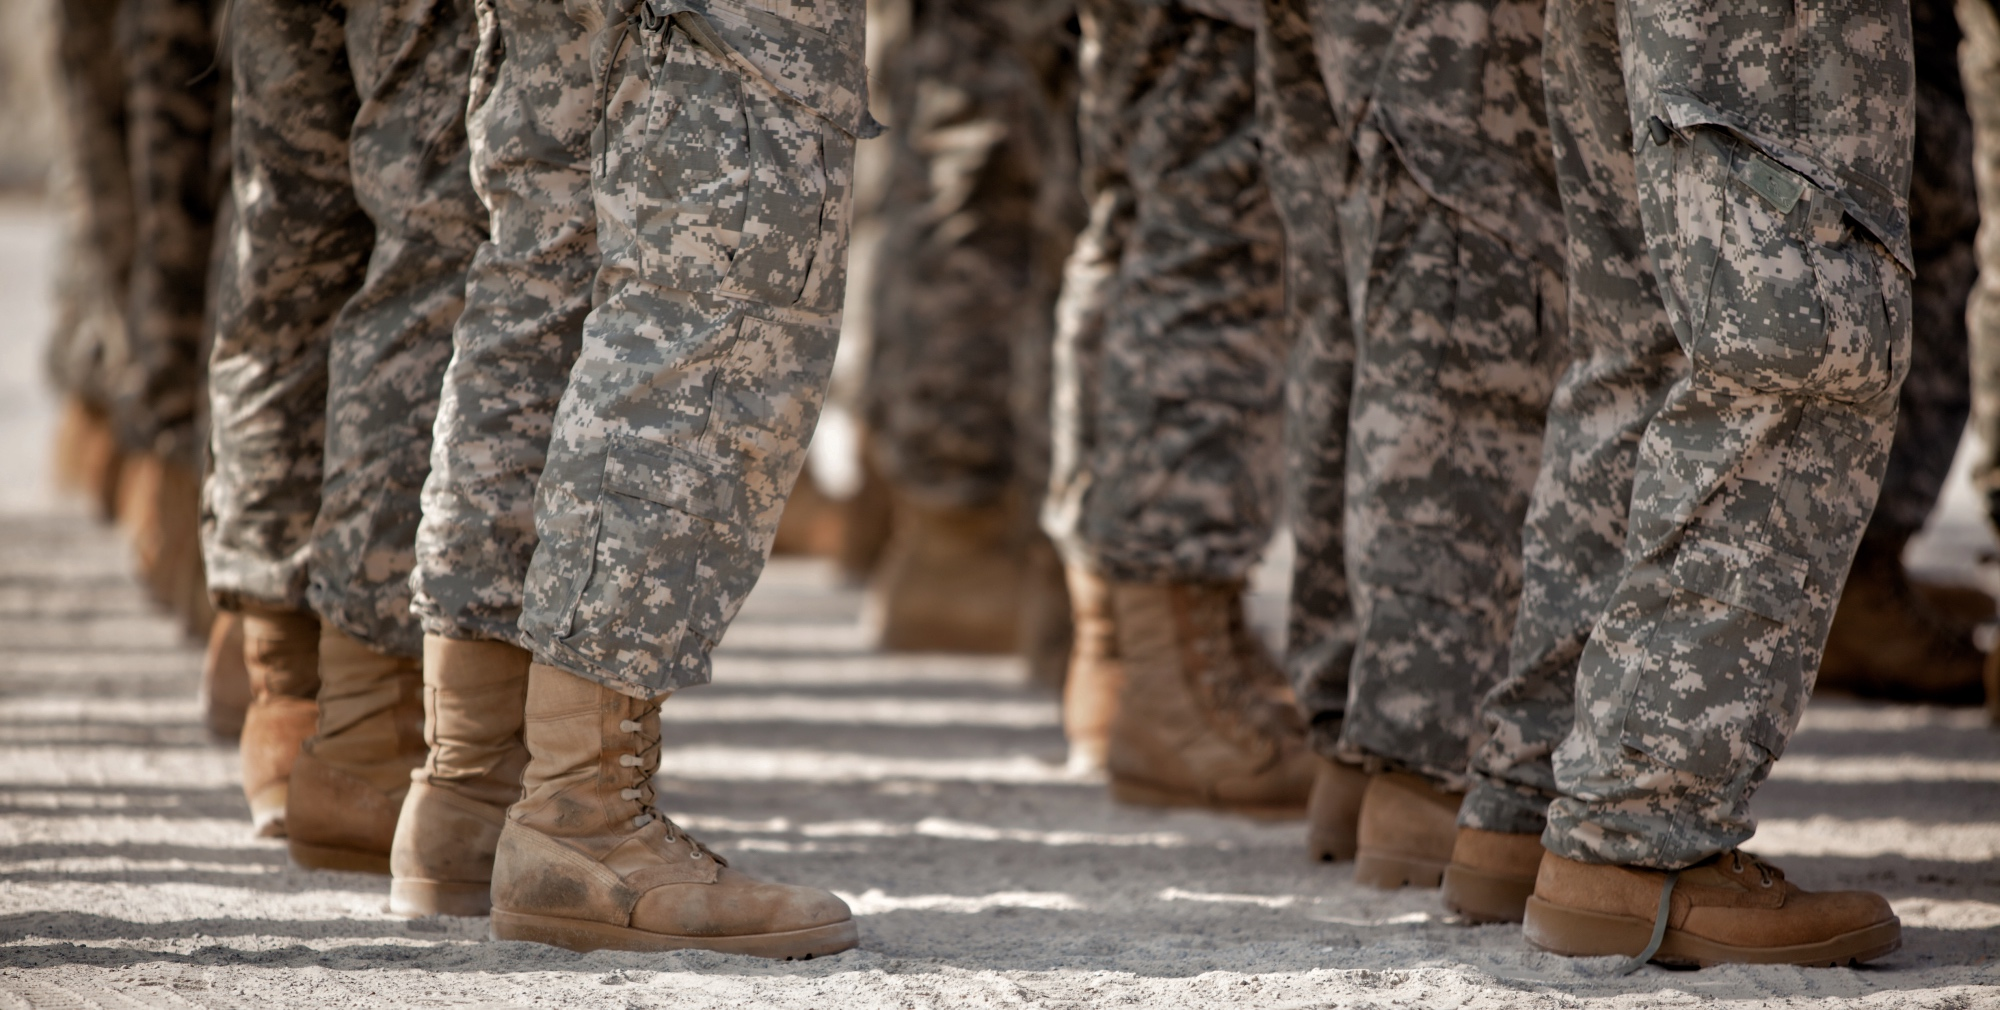 Porn in the U.S. Armed Forces: How Explicit Content May Be Influencing Military Culture